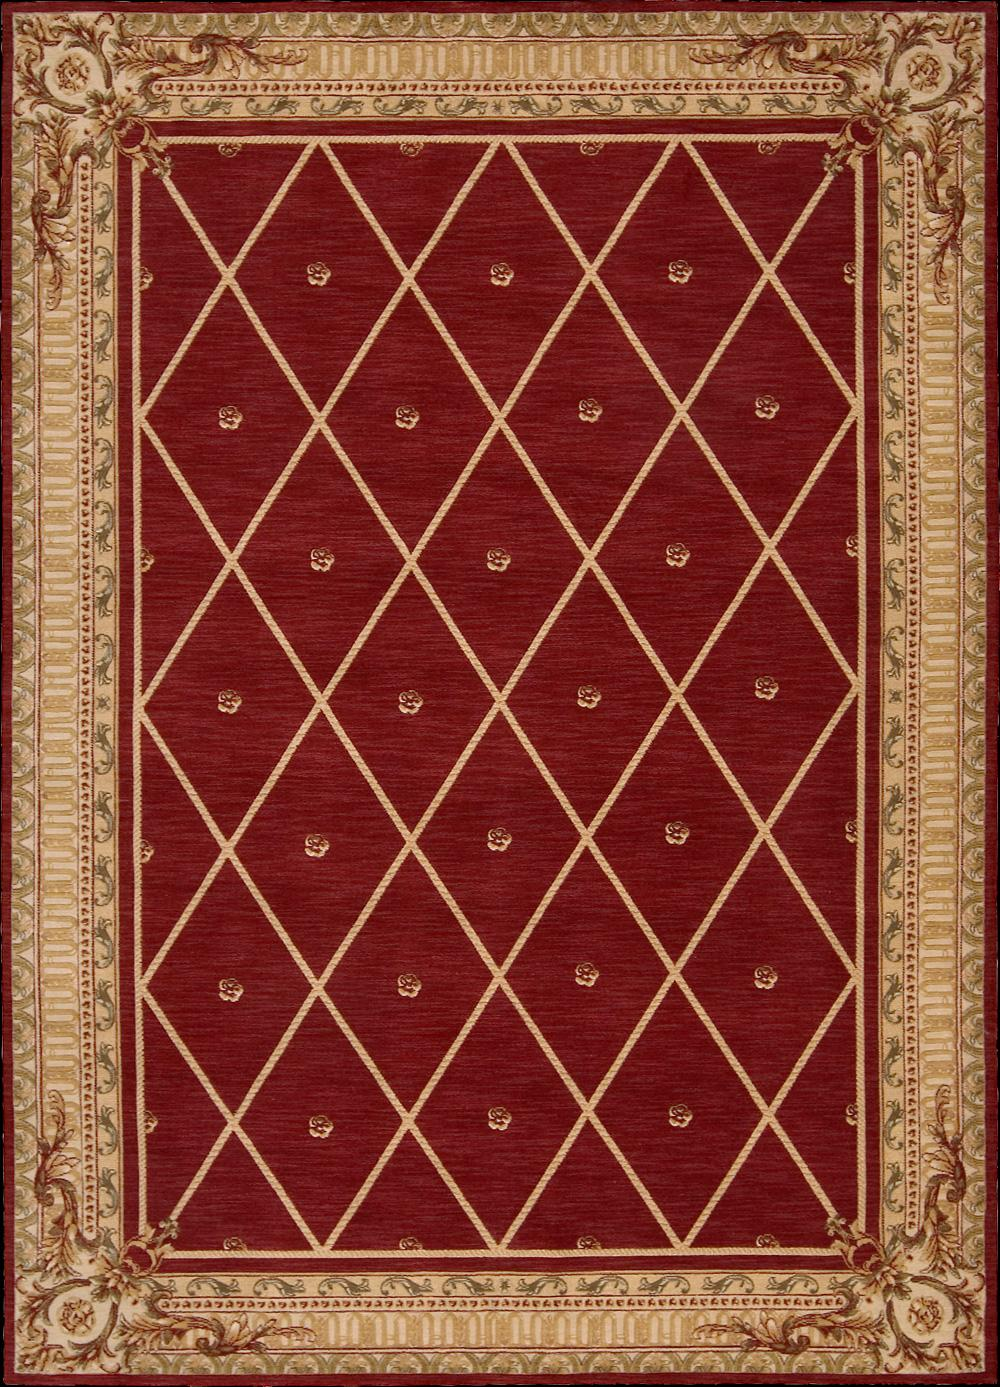 "Nourison Ashton House Area Rug 9'6"" x 13' - Item Number: 32659"